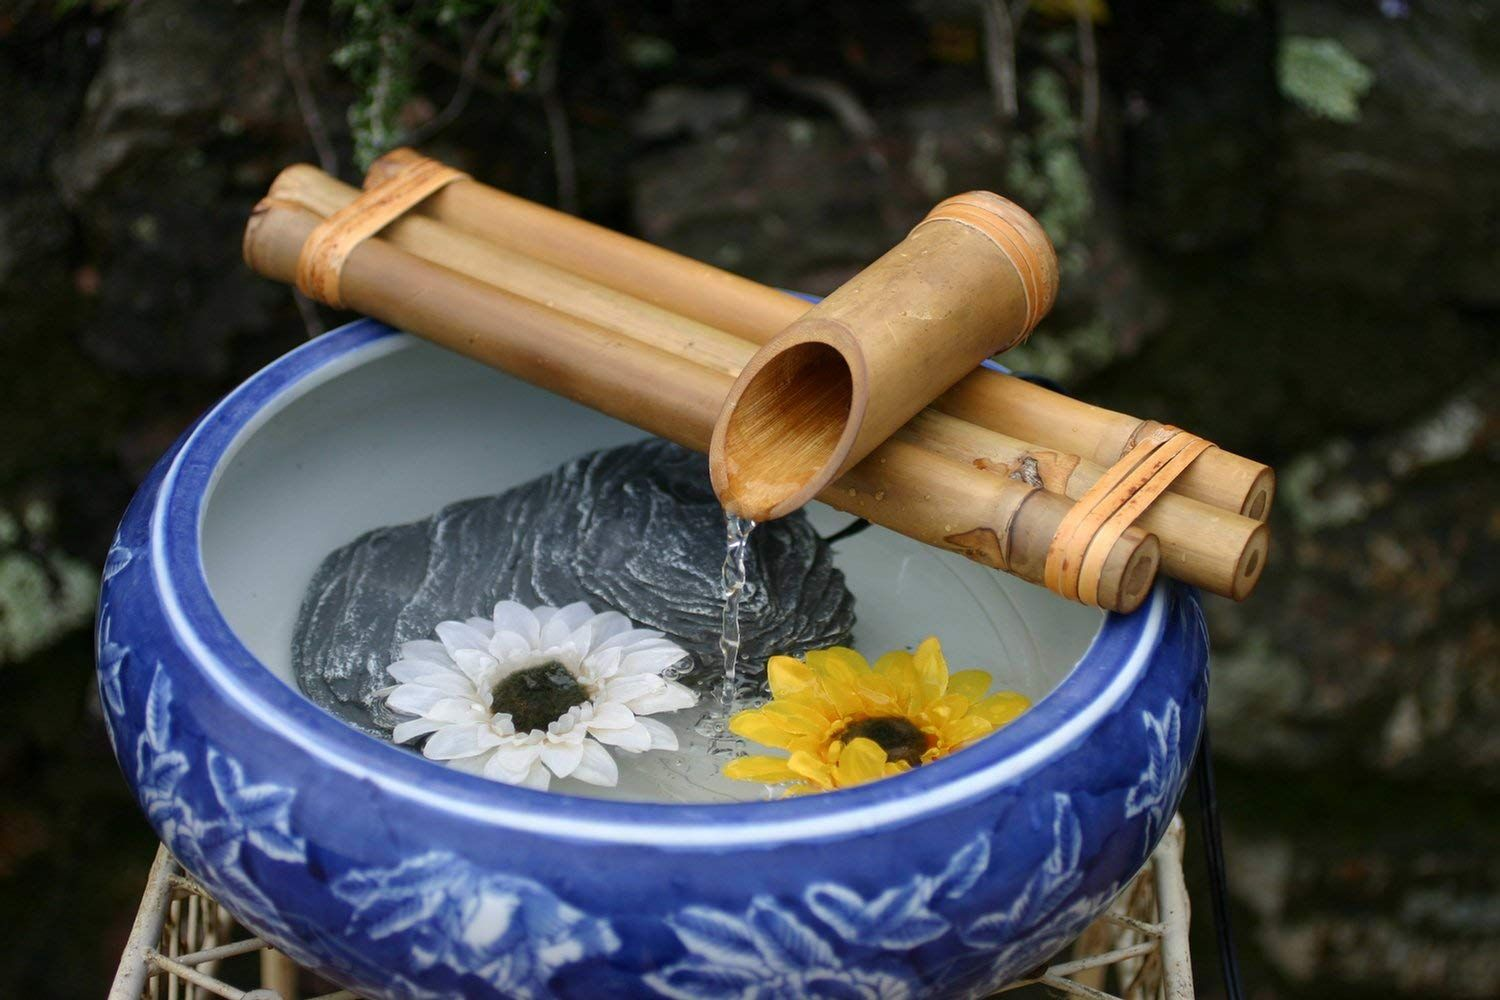 Small bamboo water fountain in a porcelain bowl